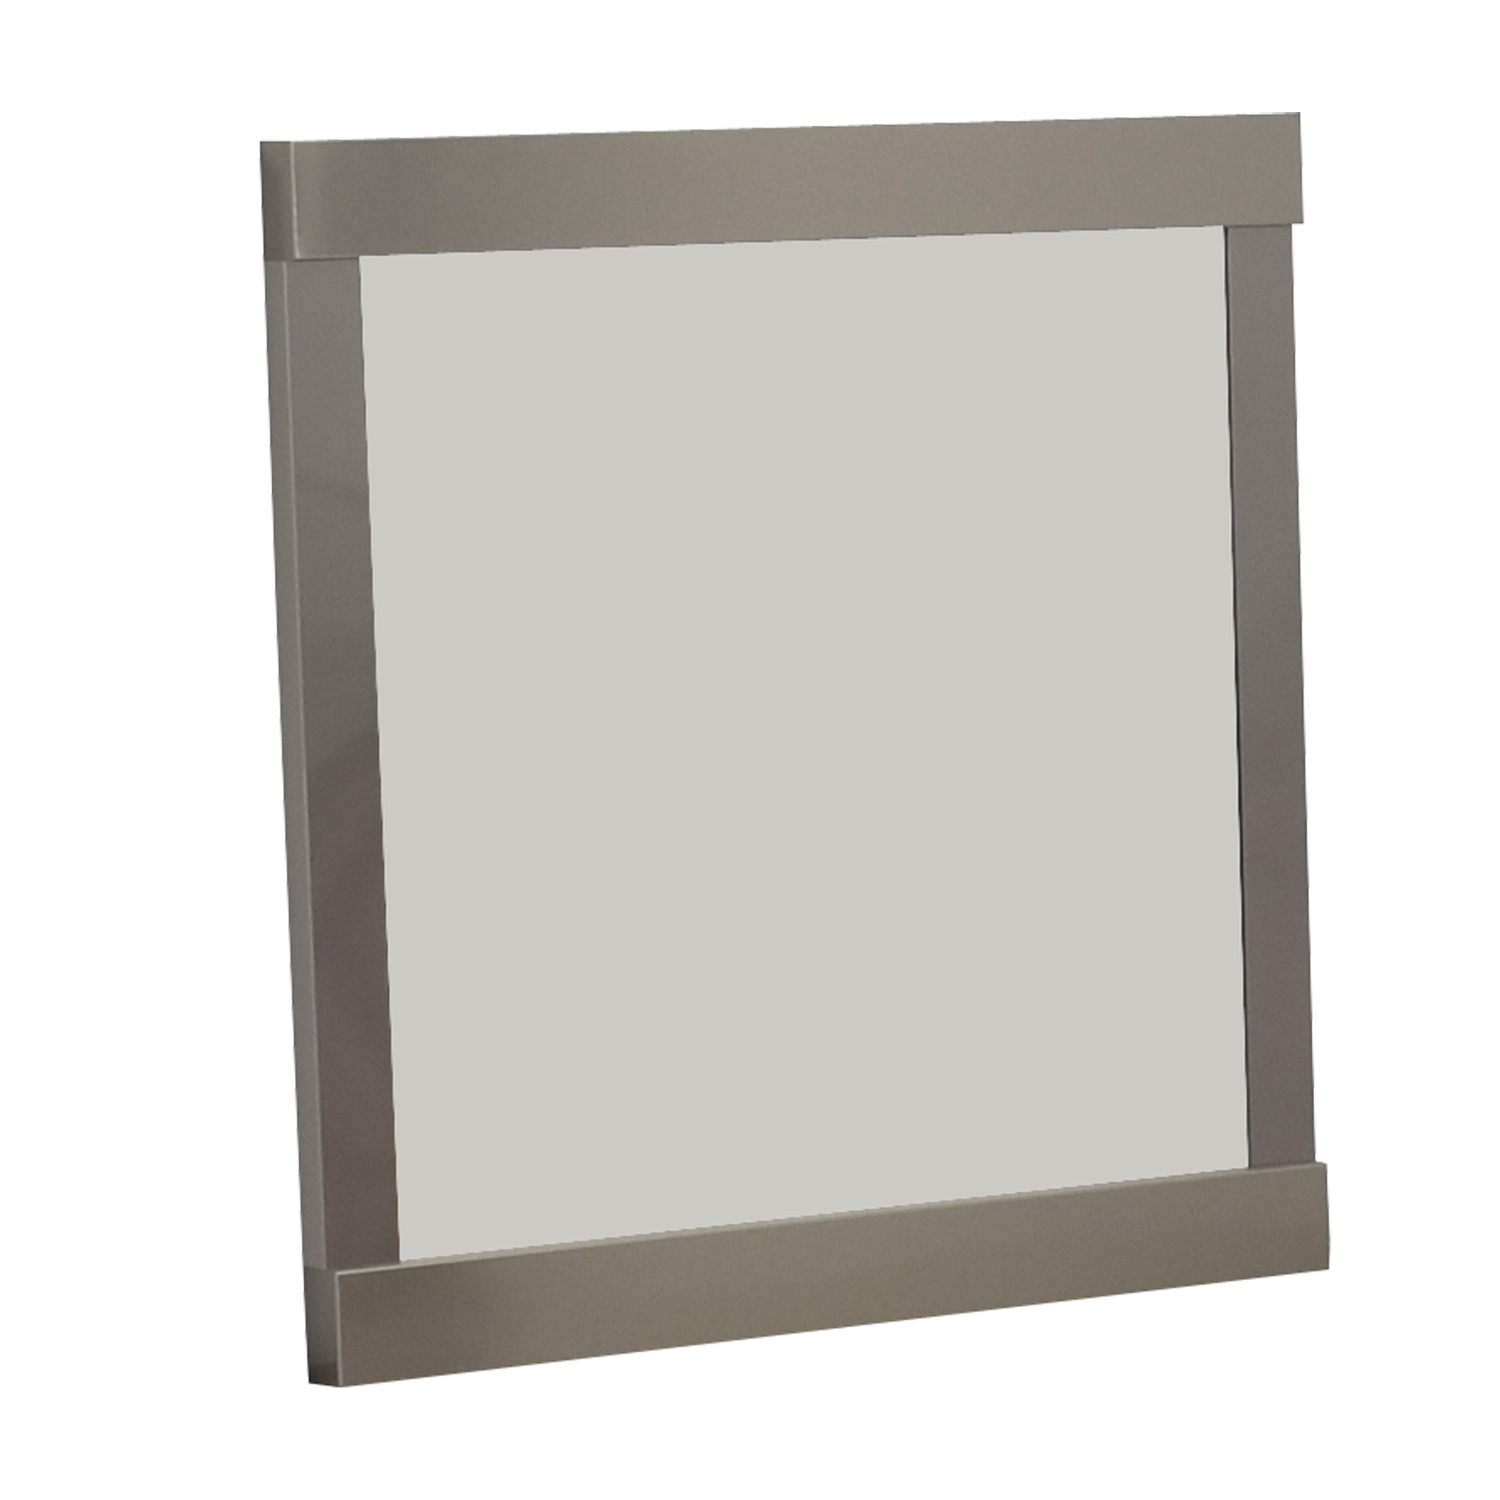 shop Crate & Barrel Crate & Barrel Silver Wall Mirror online